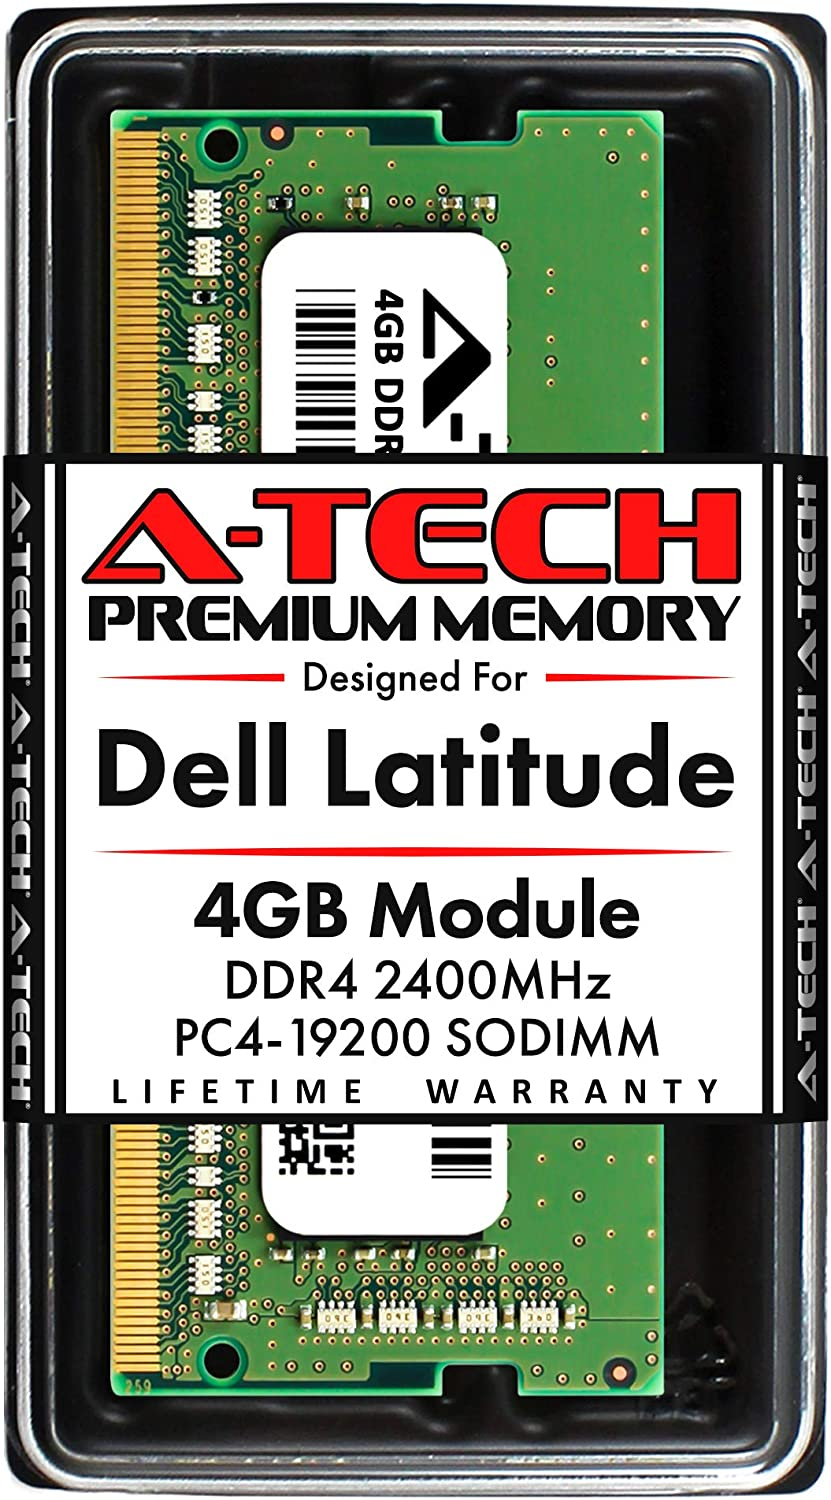 A-Tech 4GB RAM for Dell Latitude 7400, 7300, 5500, 5400, 5300, 3500, 3400, 3300   DDR4 2400MHz SODIMM PC4-19200 Laptop Memory Upgrade Module